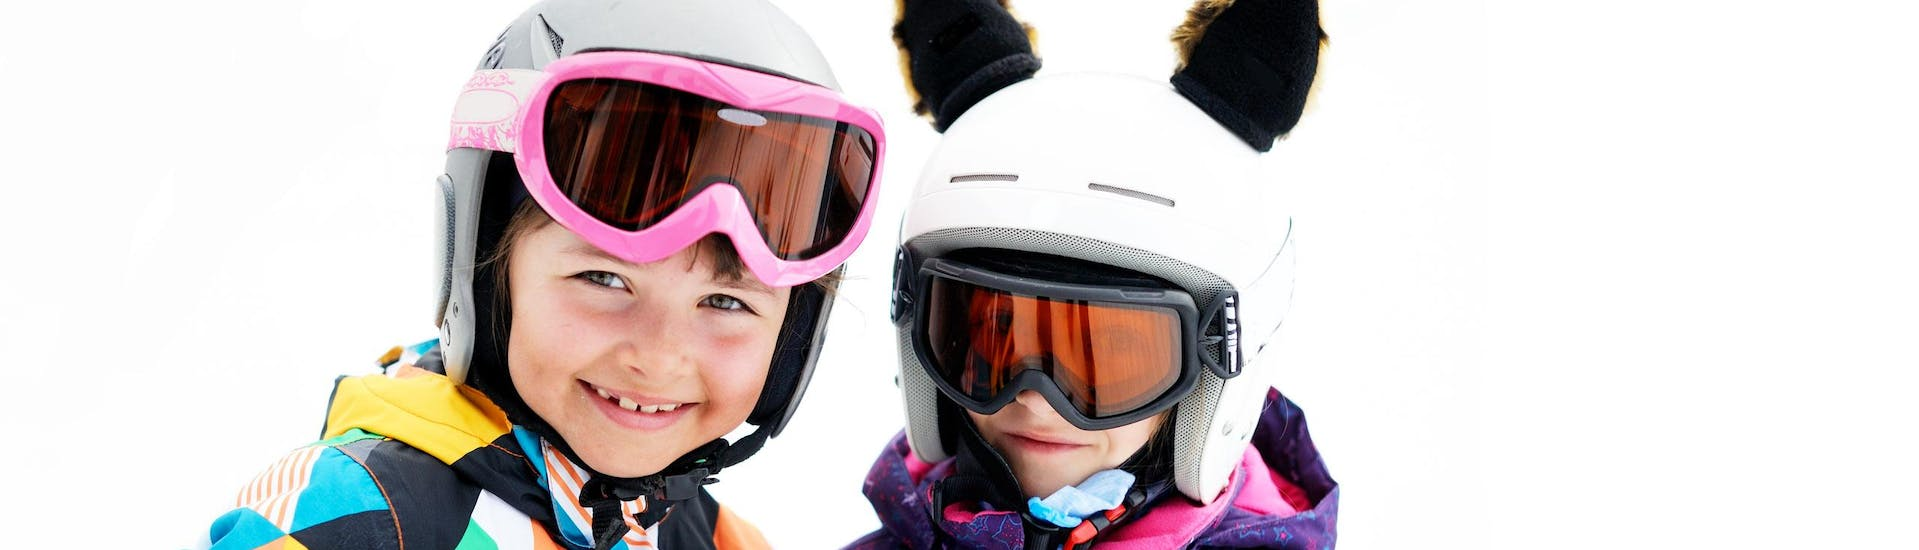 Two young children smiling at the camera during one of the Private Ski Lessons for Kids of All Ages organised by Ben&Joe's Private Ski & SB School Davos.